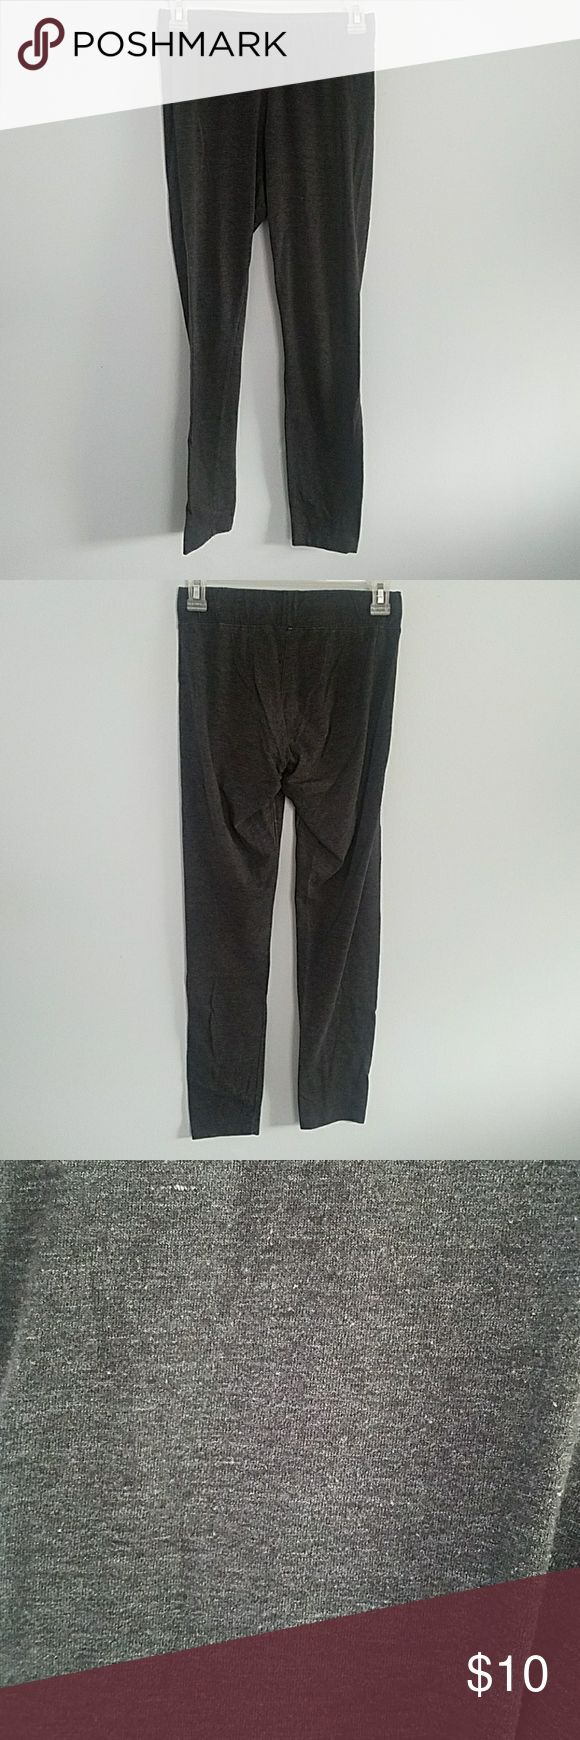 Dark Grey Leggings A bit see through. Should only be worn under a dress, cardigan, skirt, or long shirt. Comfortable and stretchy material. Very loved, but still in good condition. Vanity Pants Leggings